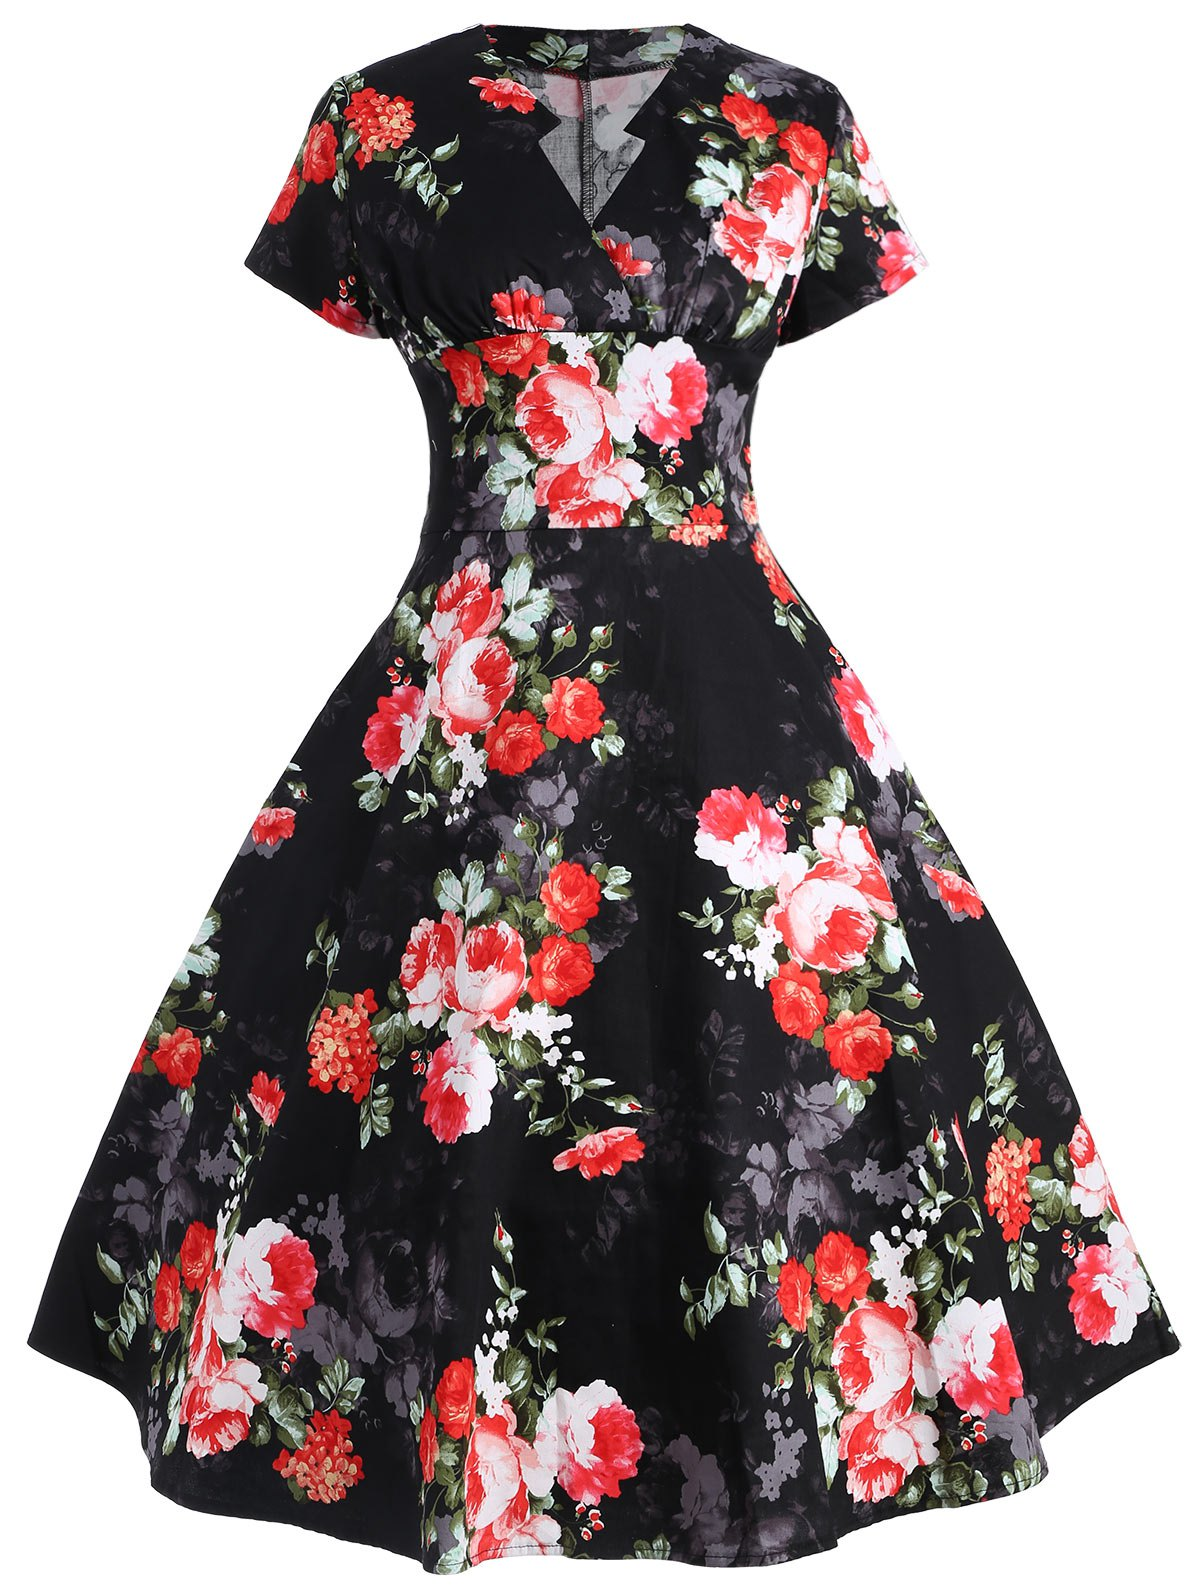 Floral Printed Empire Waist Flare Dress floral printed empire waist dress with tube top